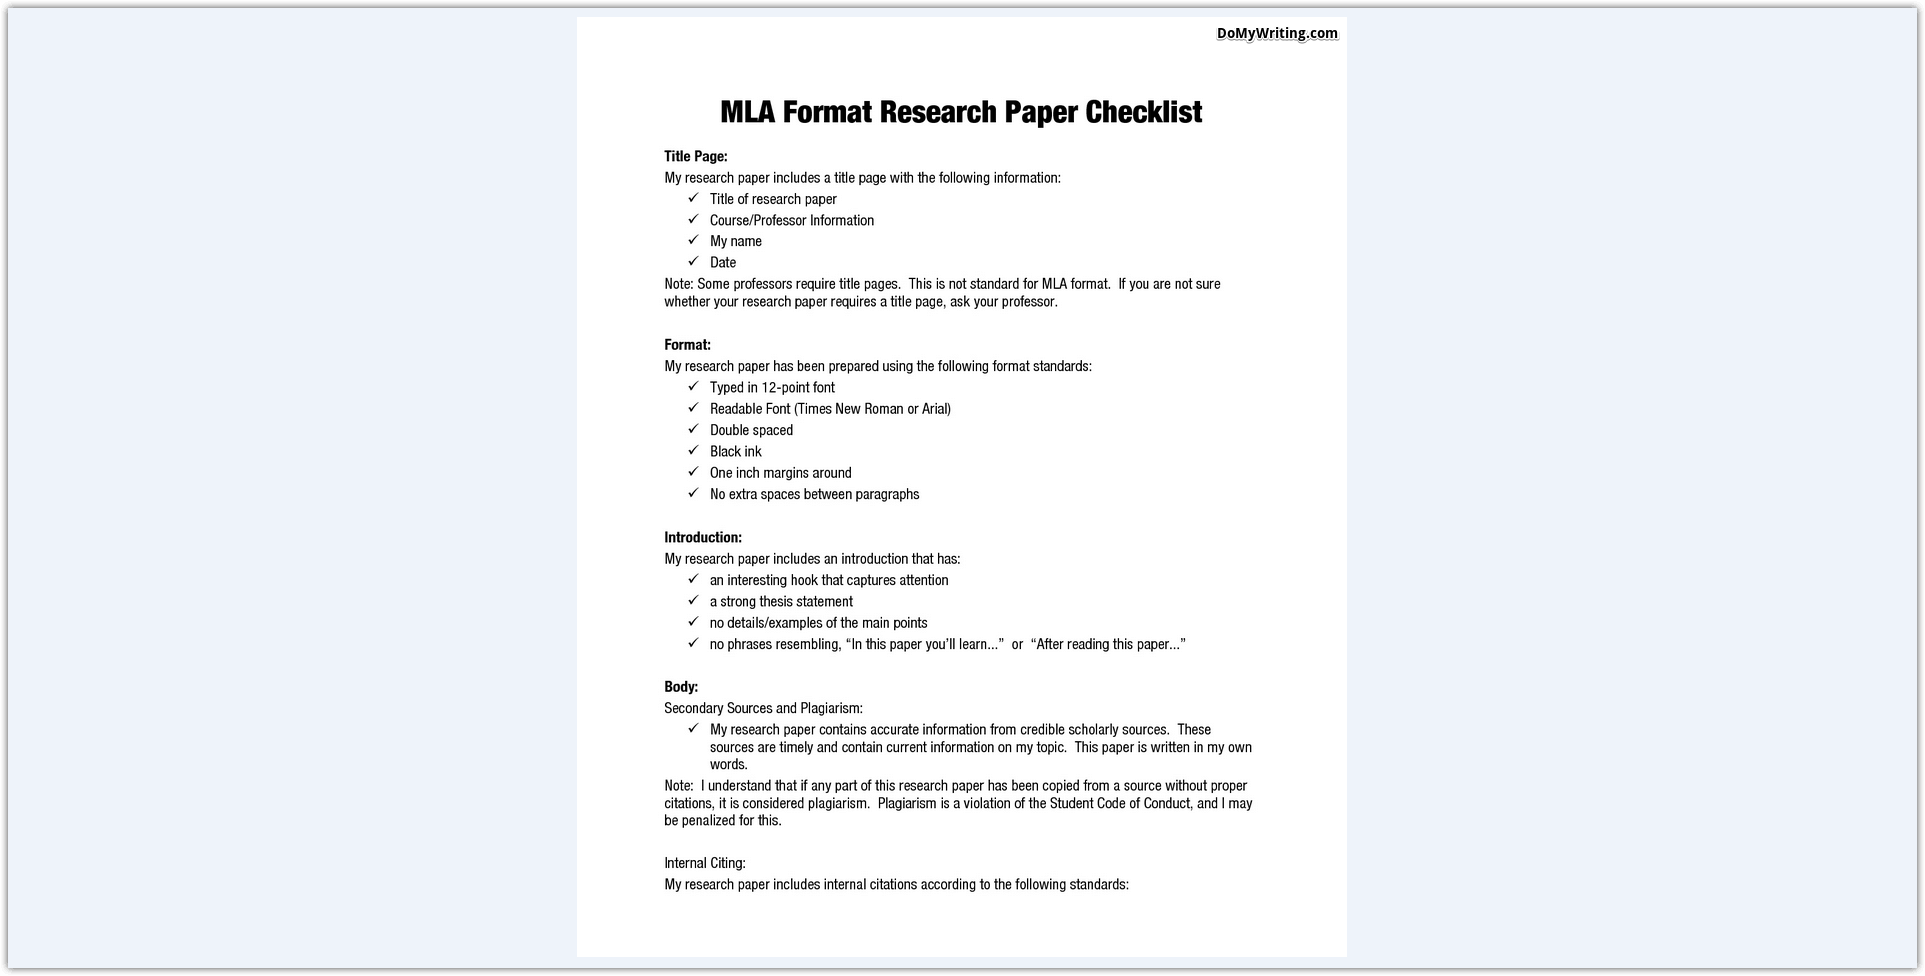 007 Research Paper Mla Format In Excellent Style Outline Sample Title Page Writing A Using Full